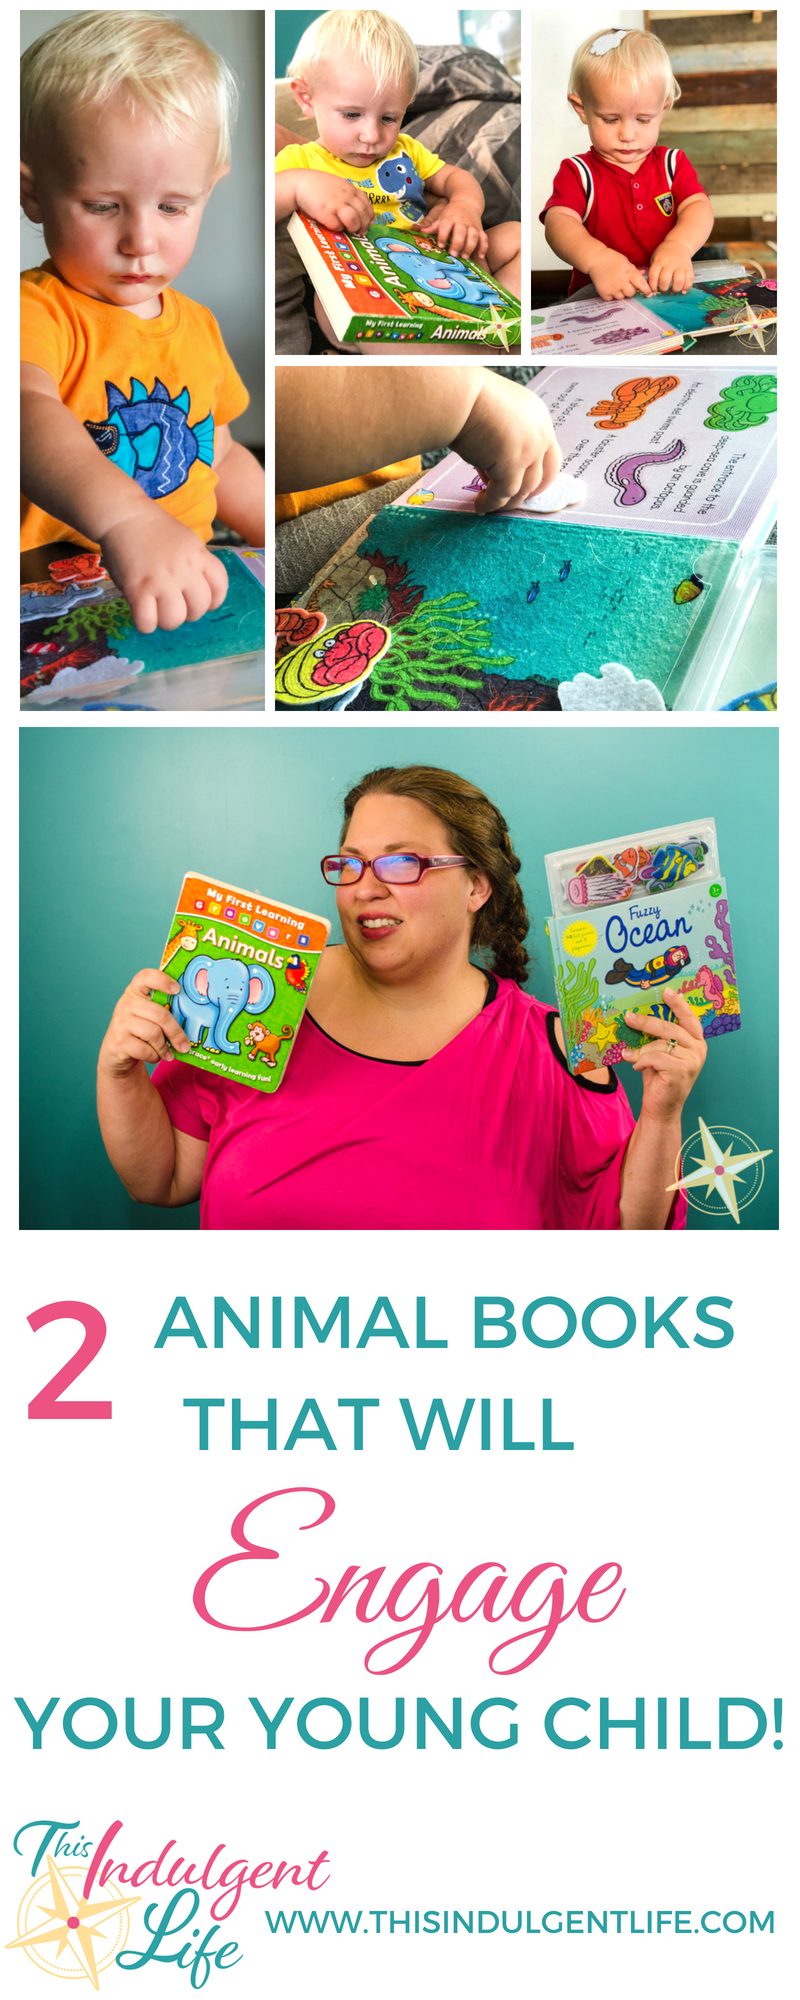 2 Animal Books That Will Engage Your Young Child | This Indulgent Life | Are you looking for new books to enchant your child? Here are two interactive animal books that my child loves! | #childrenbooksreview #animalbooksforkids #bookreviewsforkids #toddlerbooks #bestbooksfortoddler #childrensbooksfortoddlers #bestbooksforpreschoolers #kidsbooks #booksforpreschoolers #bestbookstolearnthealphabet #abcbooks #booksabouttheocean #oceanbooks #feltbooks #interactivechildrensbooks